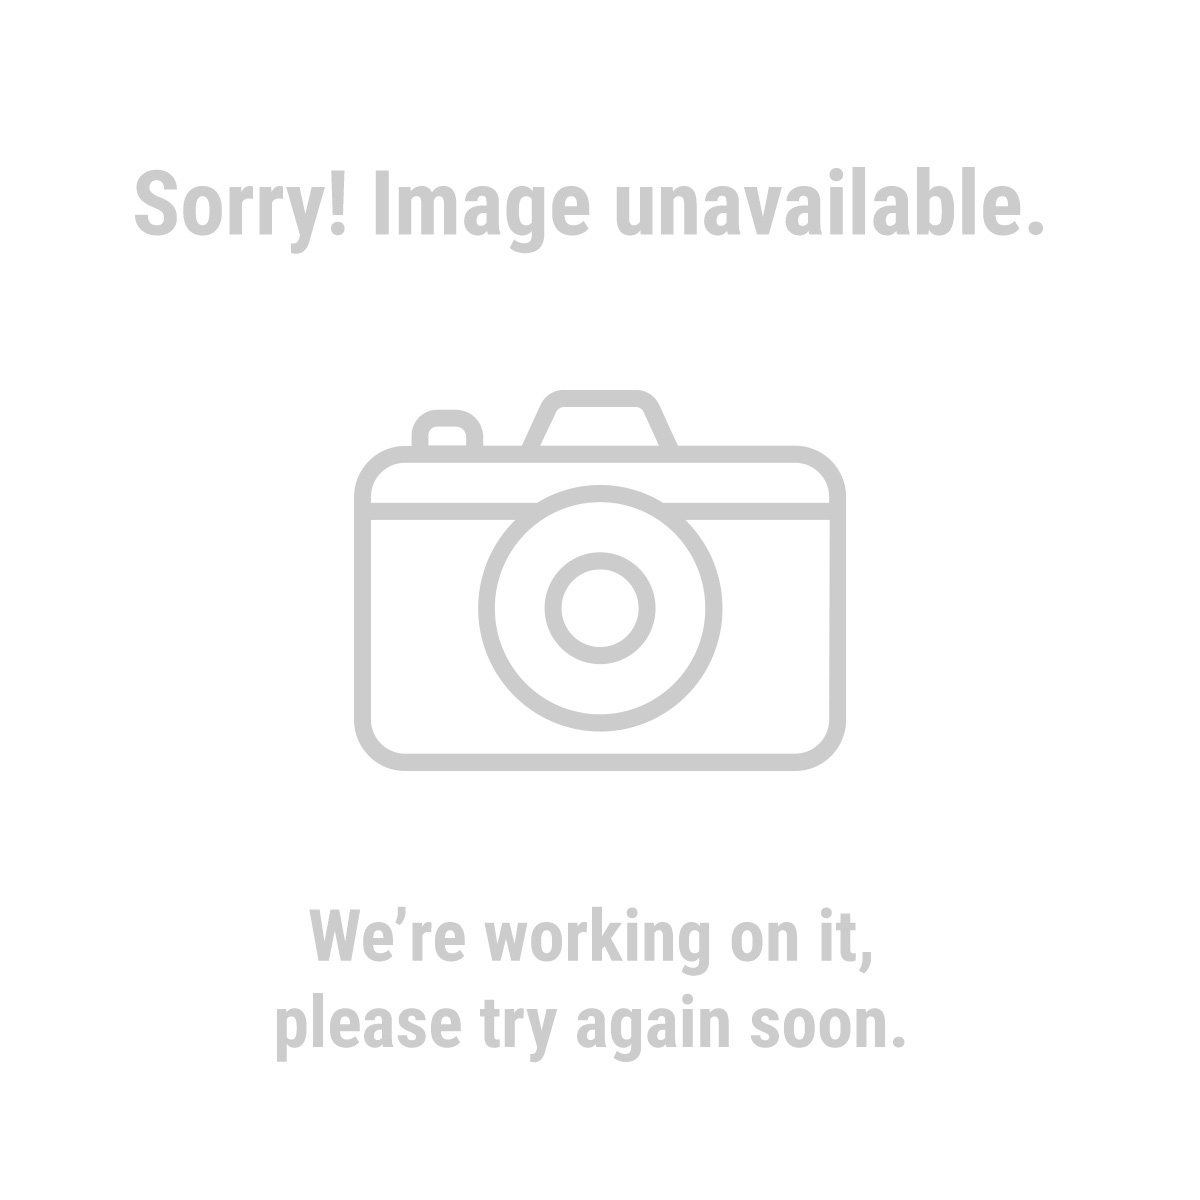 Western Safety 46698 Black Cap Knee Pads